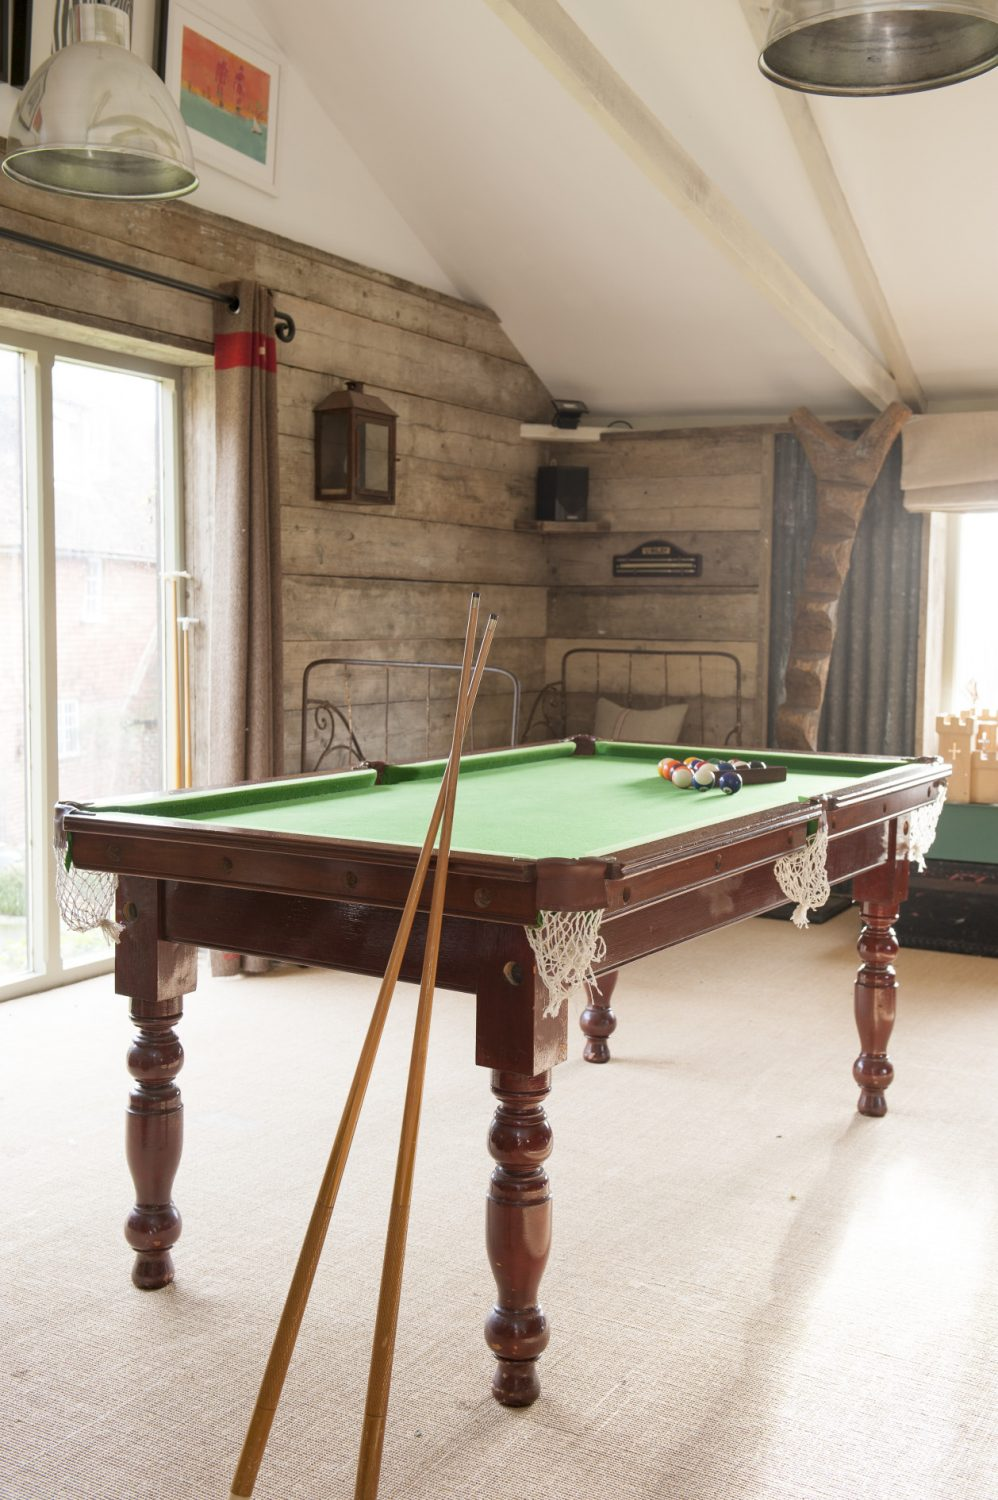 The pool table in the den